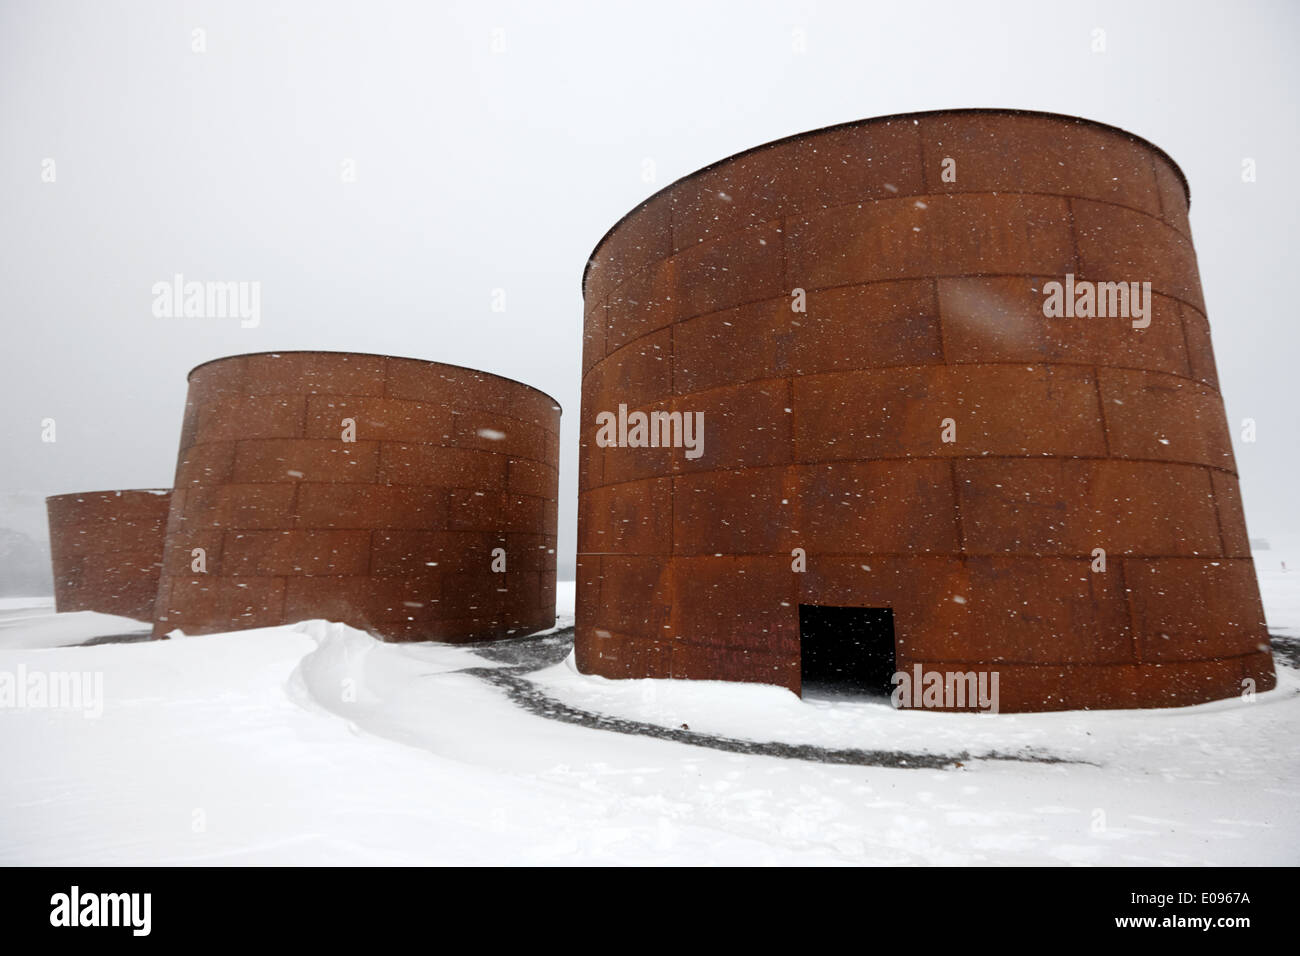 rusting old whale oil storage tanks at whalers bay deception island Antarctica - Stock Image